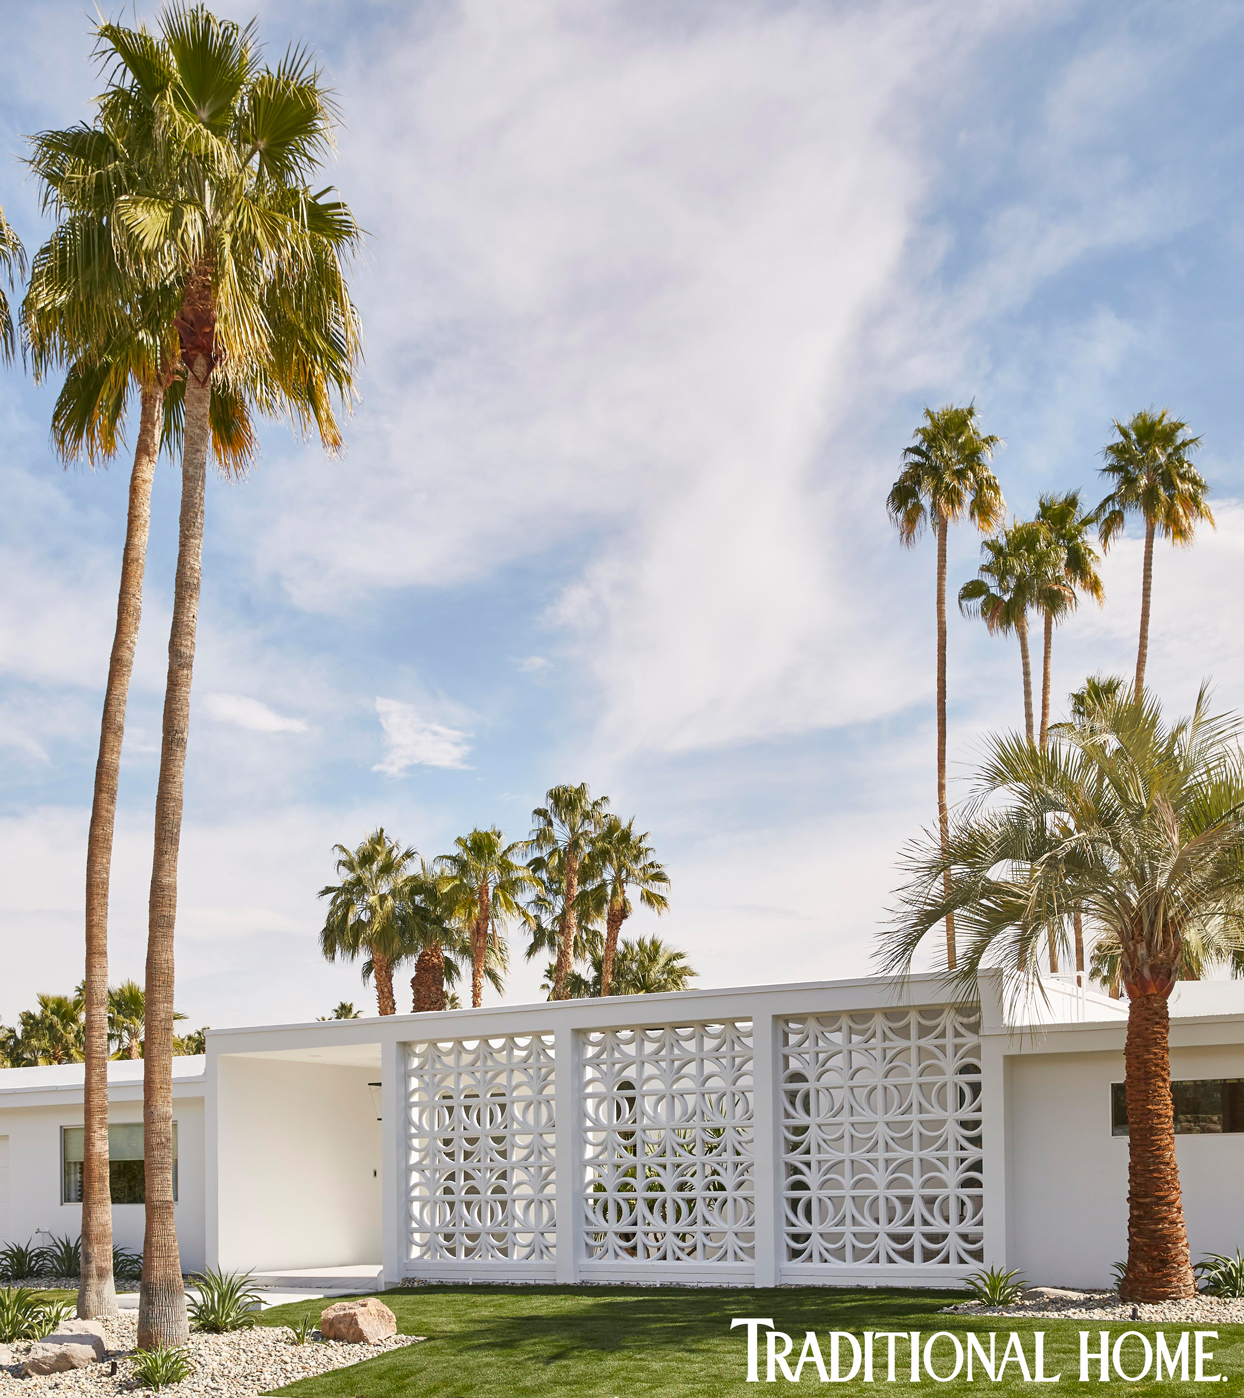 midcentury modern home white wall with palm trees